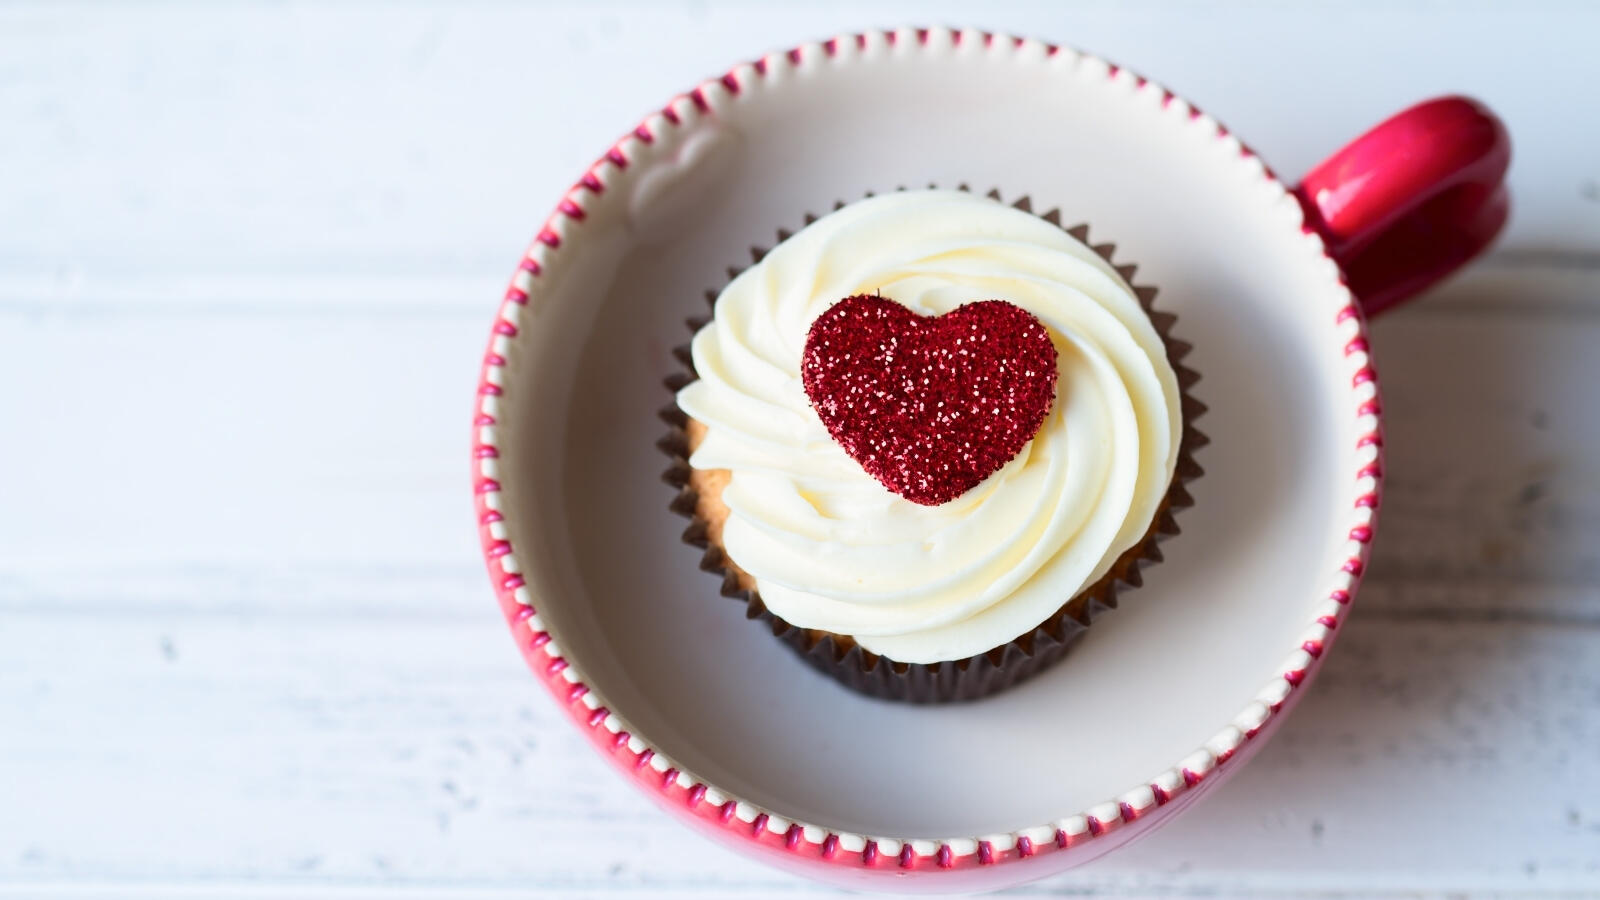 Romantic ideas to make Valentine's Day at home unforgettable